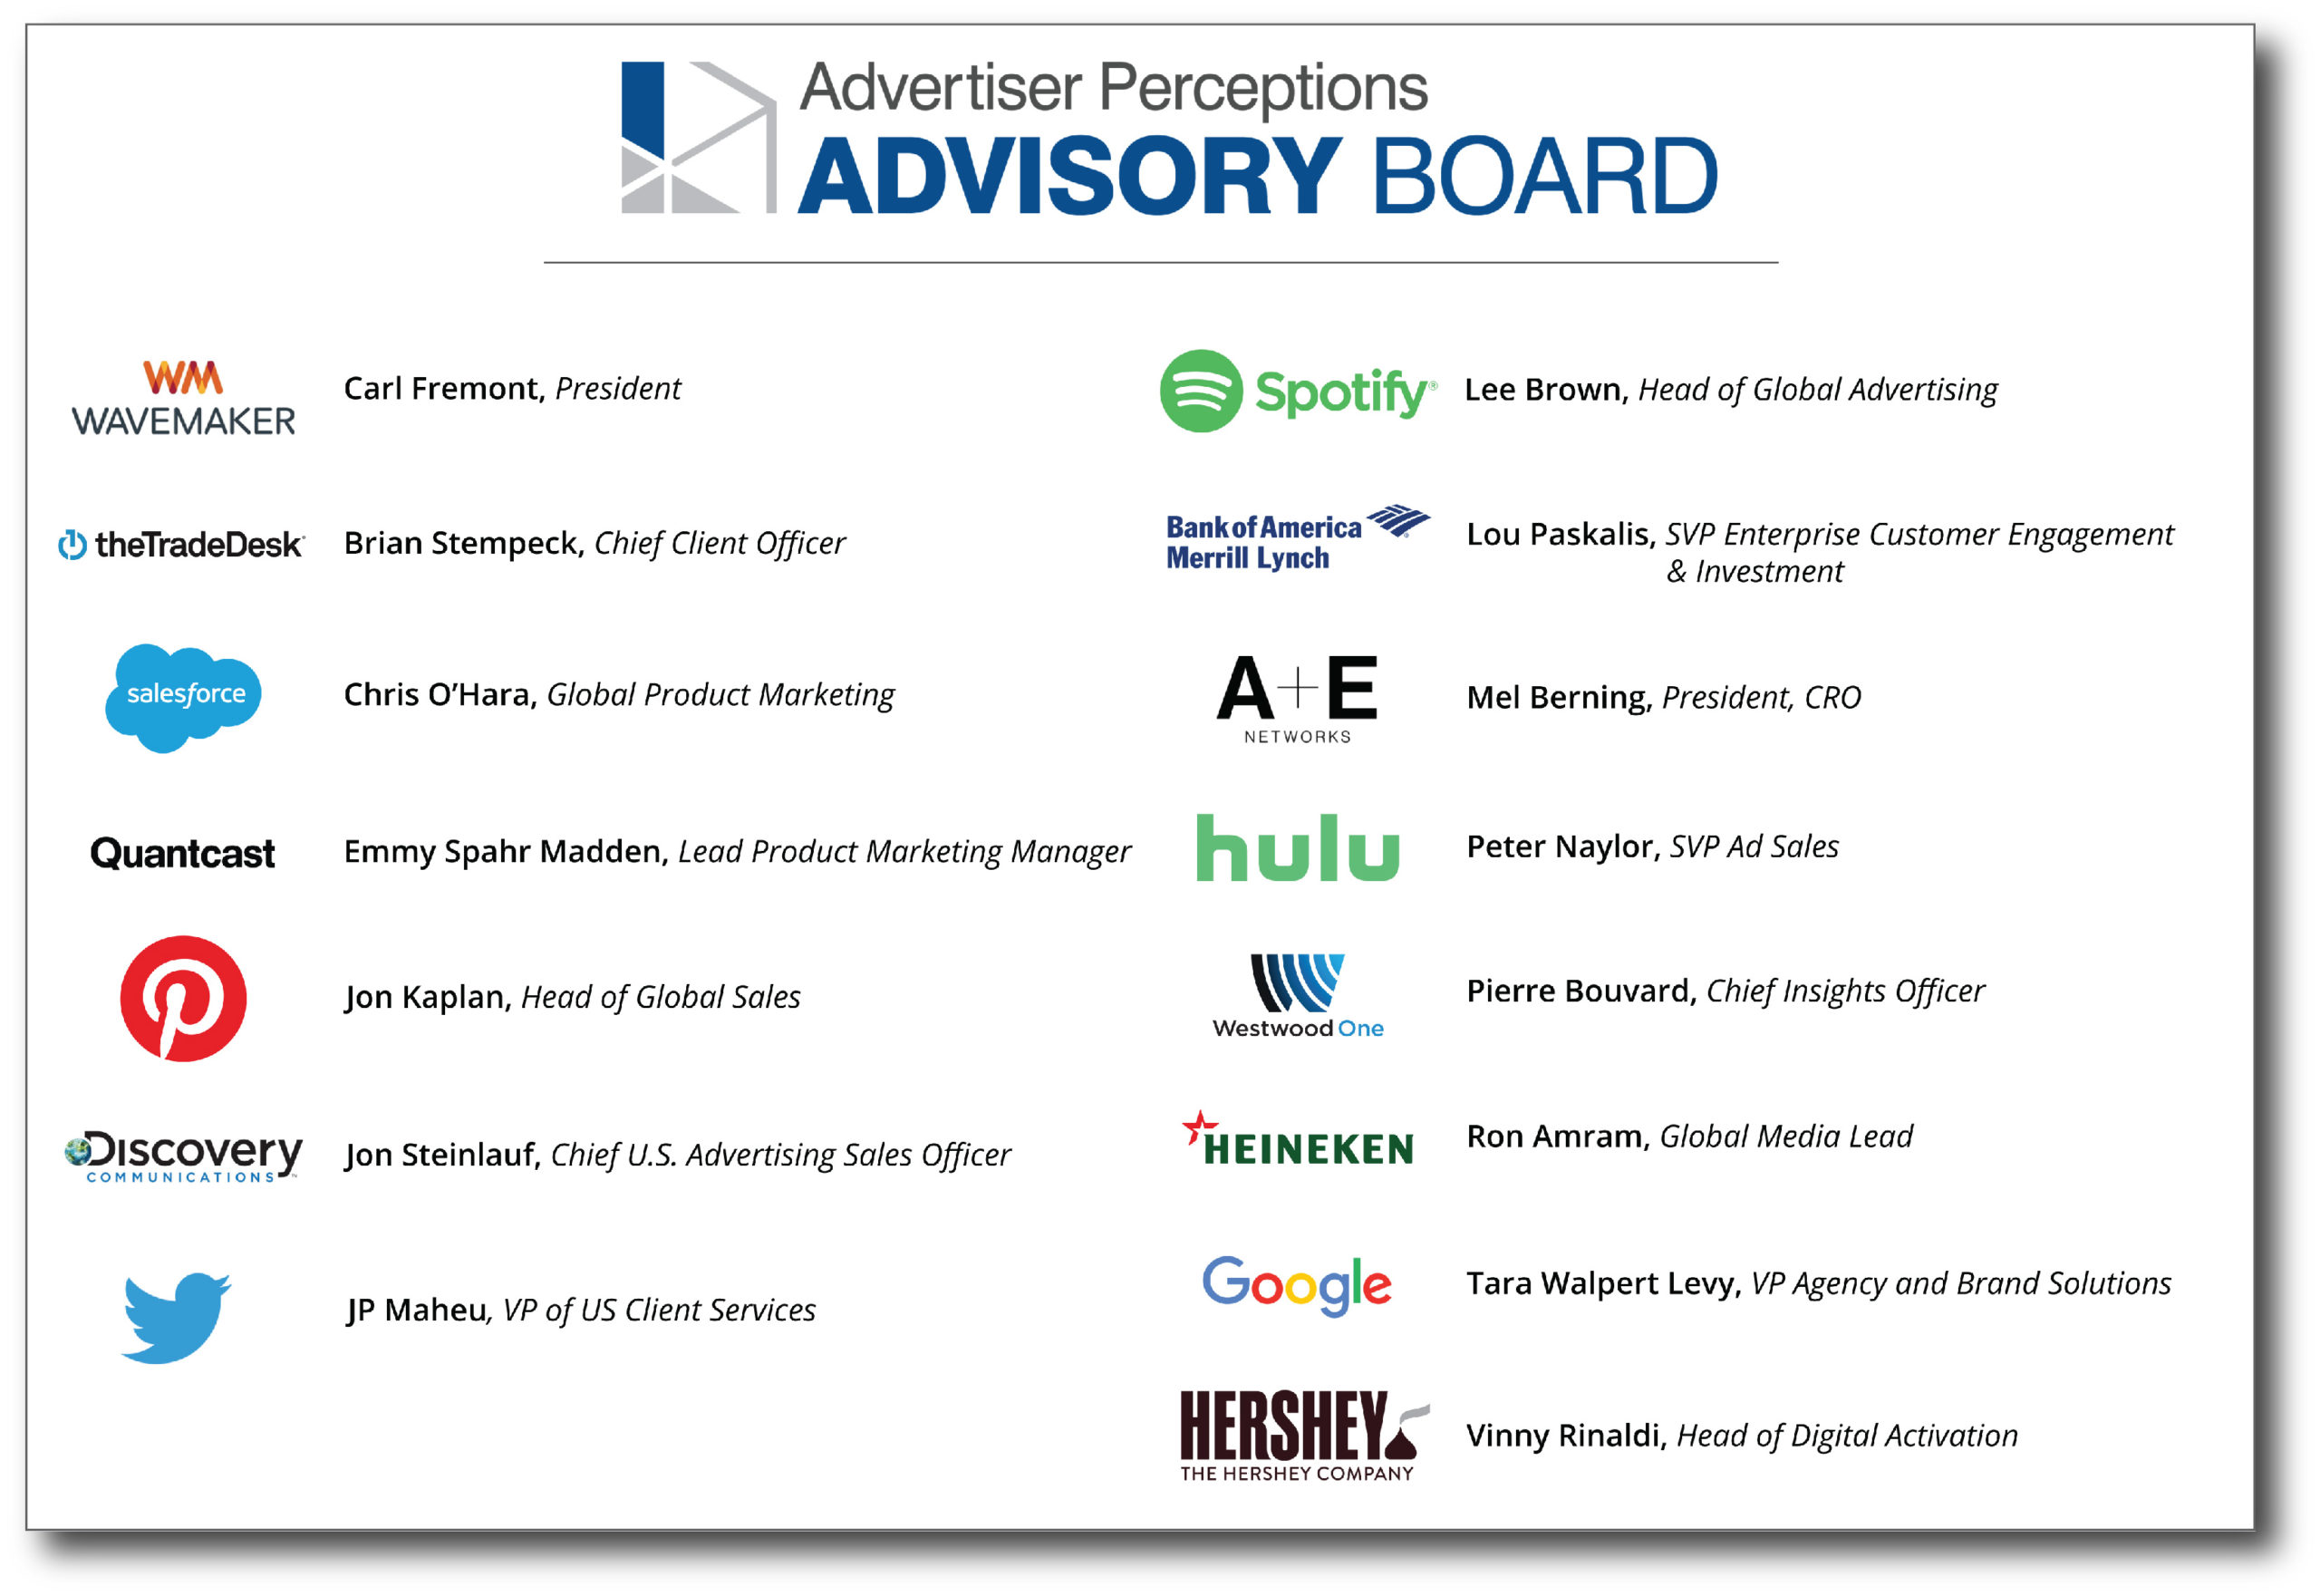 Advertiser Perceptions Advisory Board